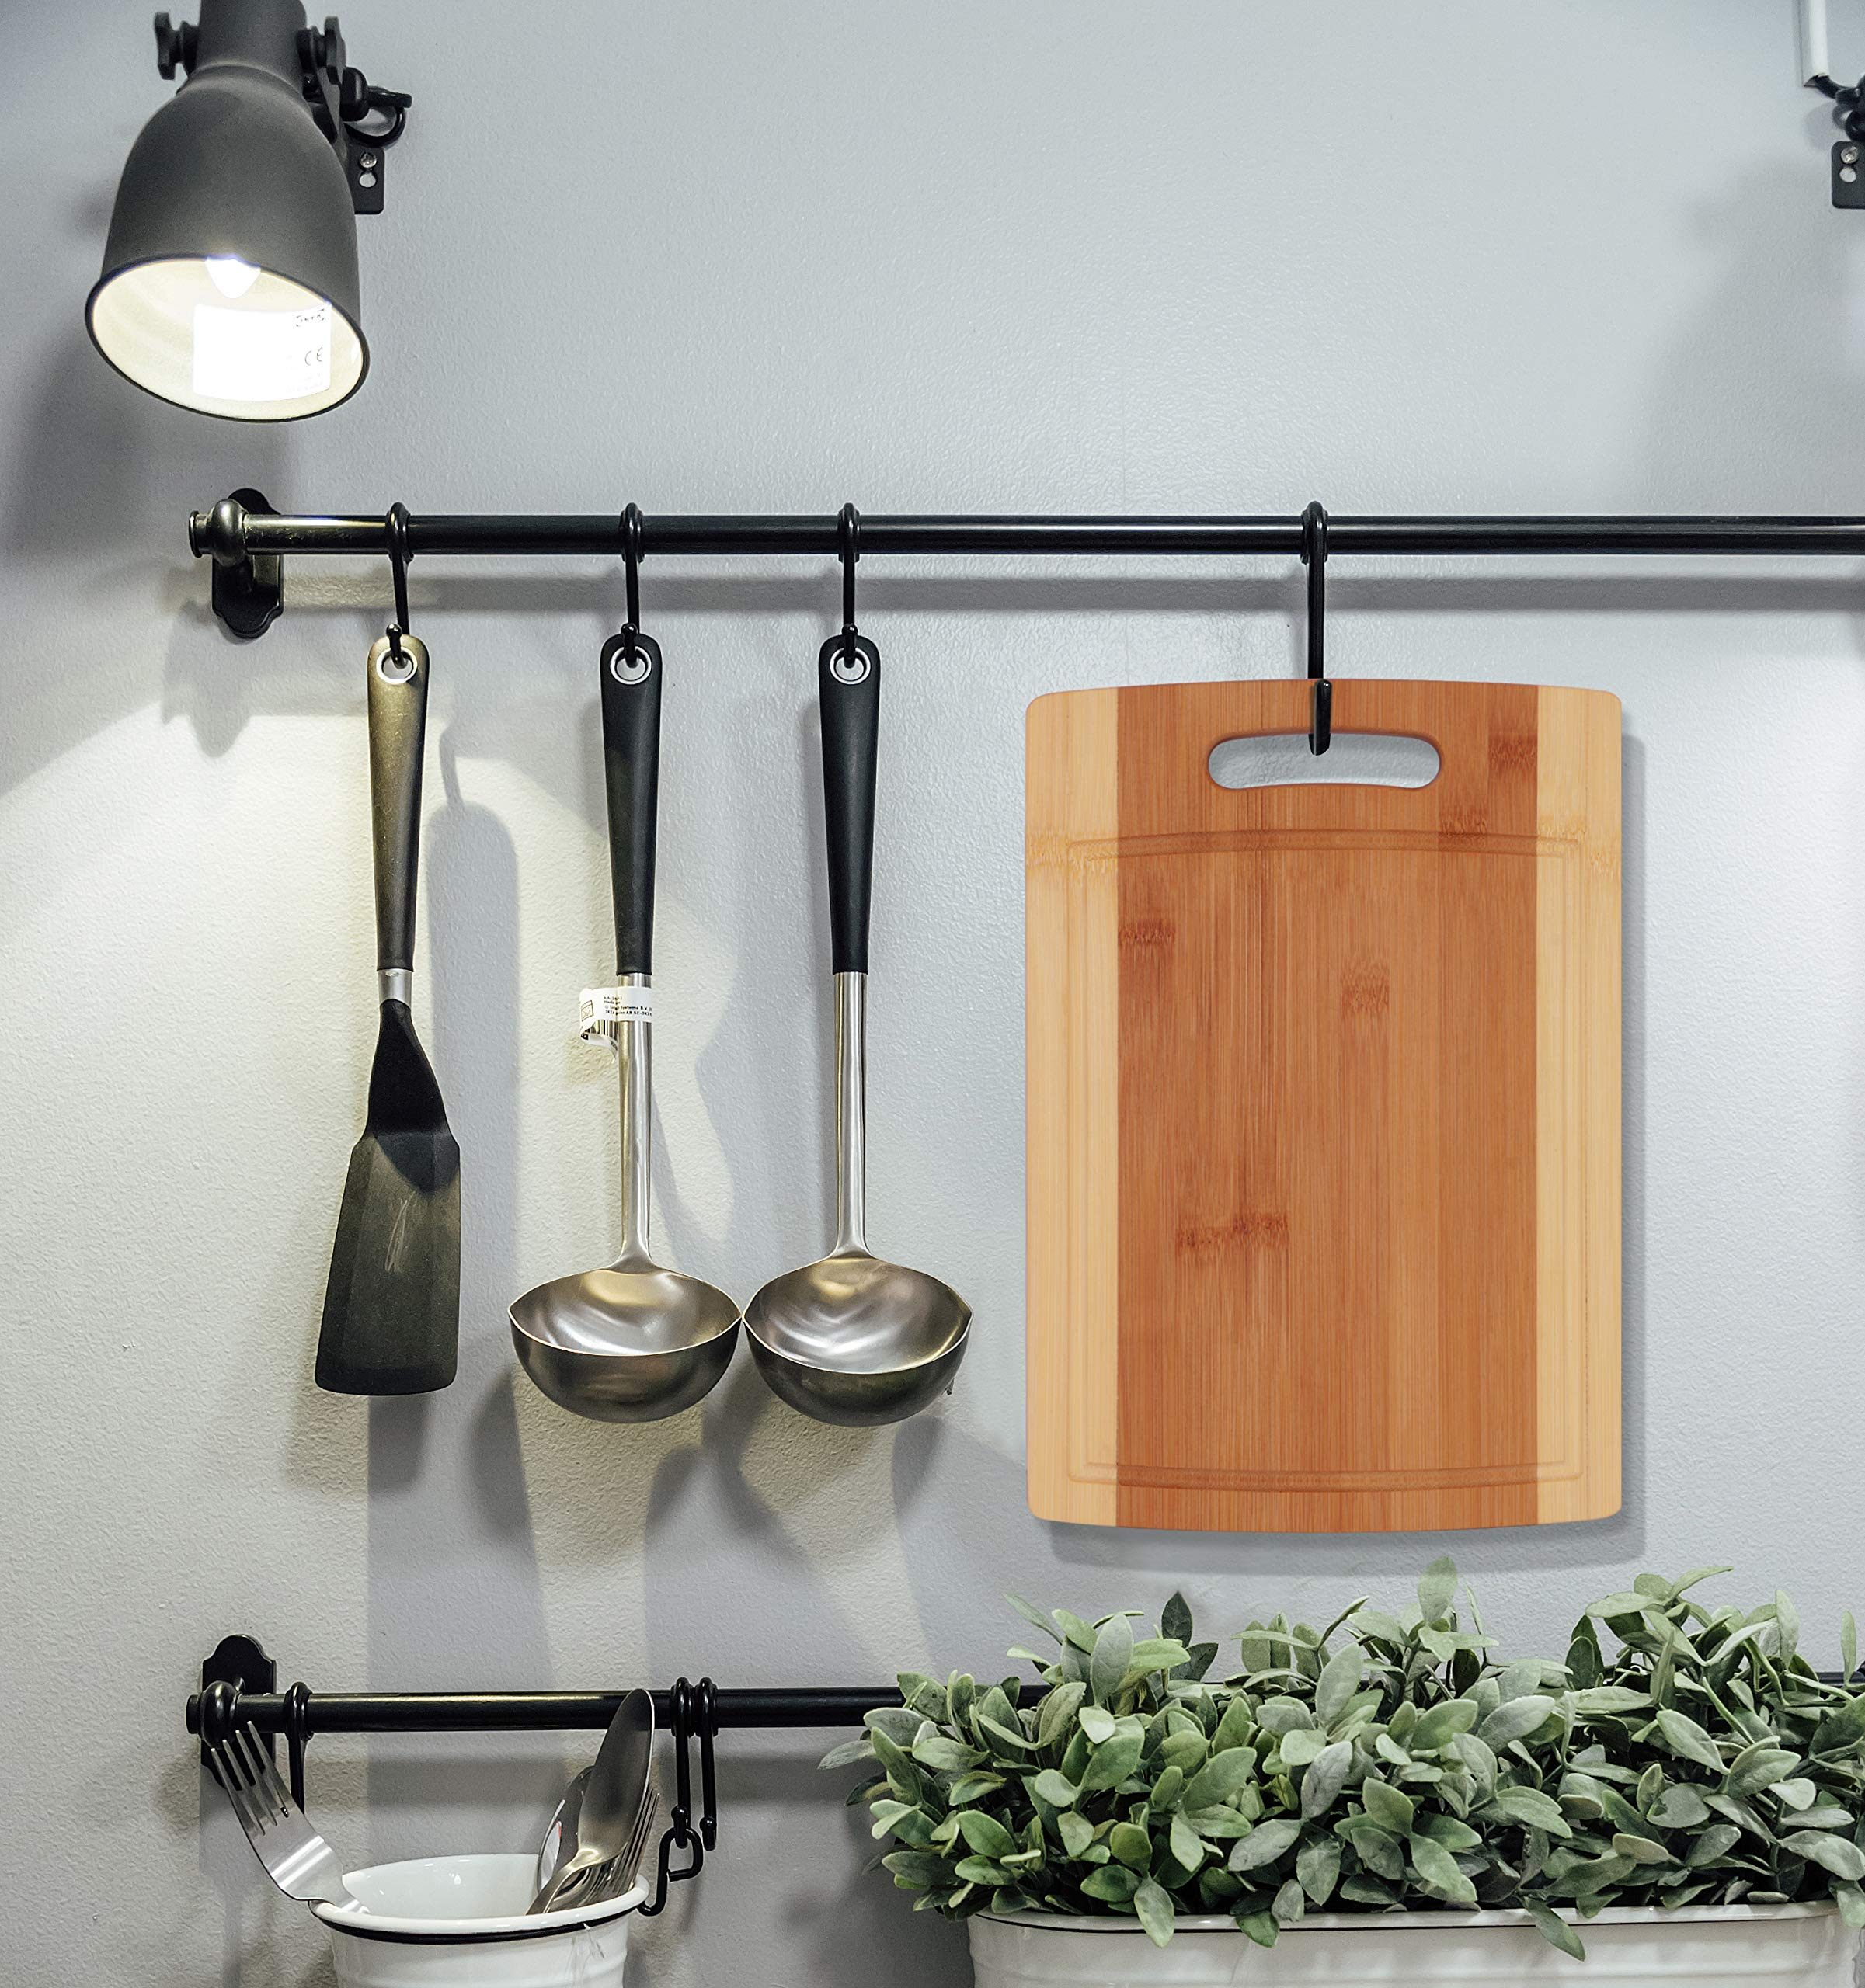 Utopia Kitchen Natural Bamboo Cutting Boards with Juice Grooves - Wooden Cutting Boards 3 Piece Set by Utopia Kitchen (Image #6)